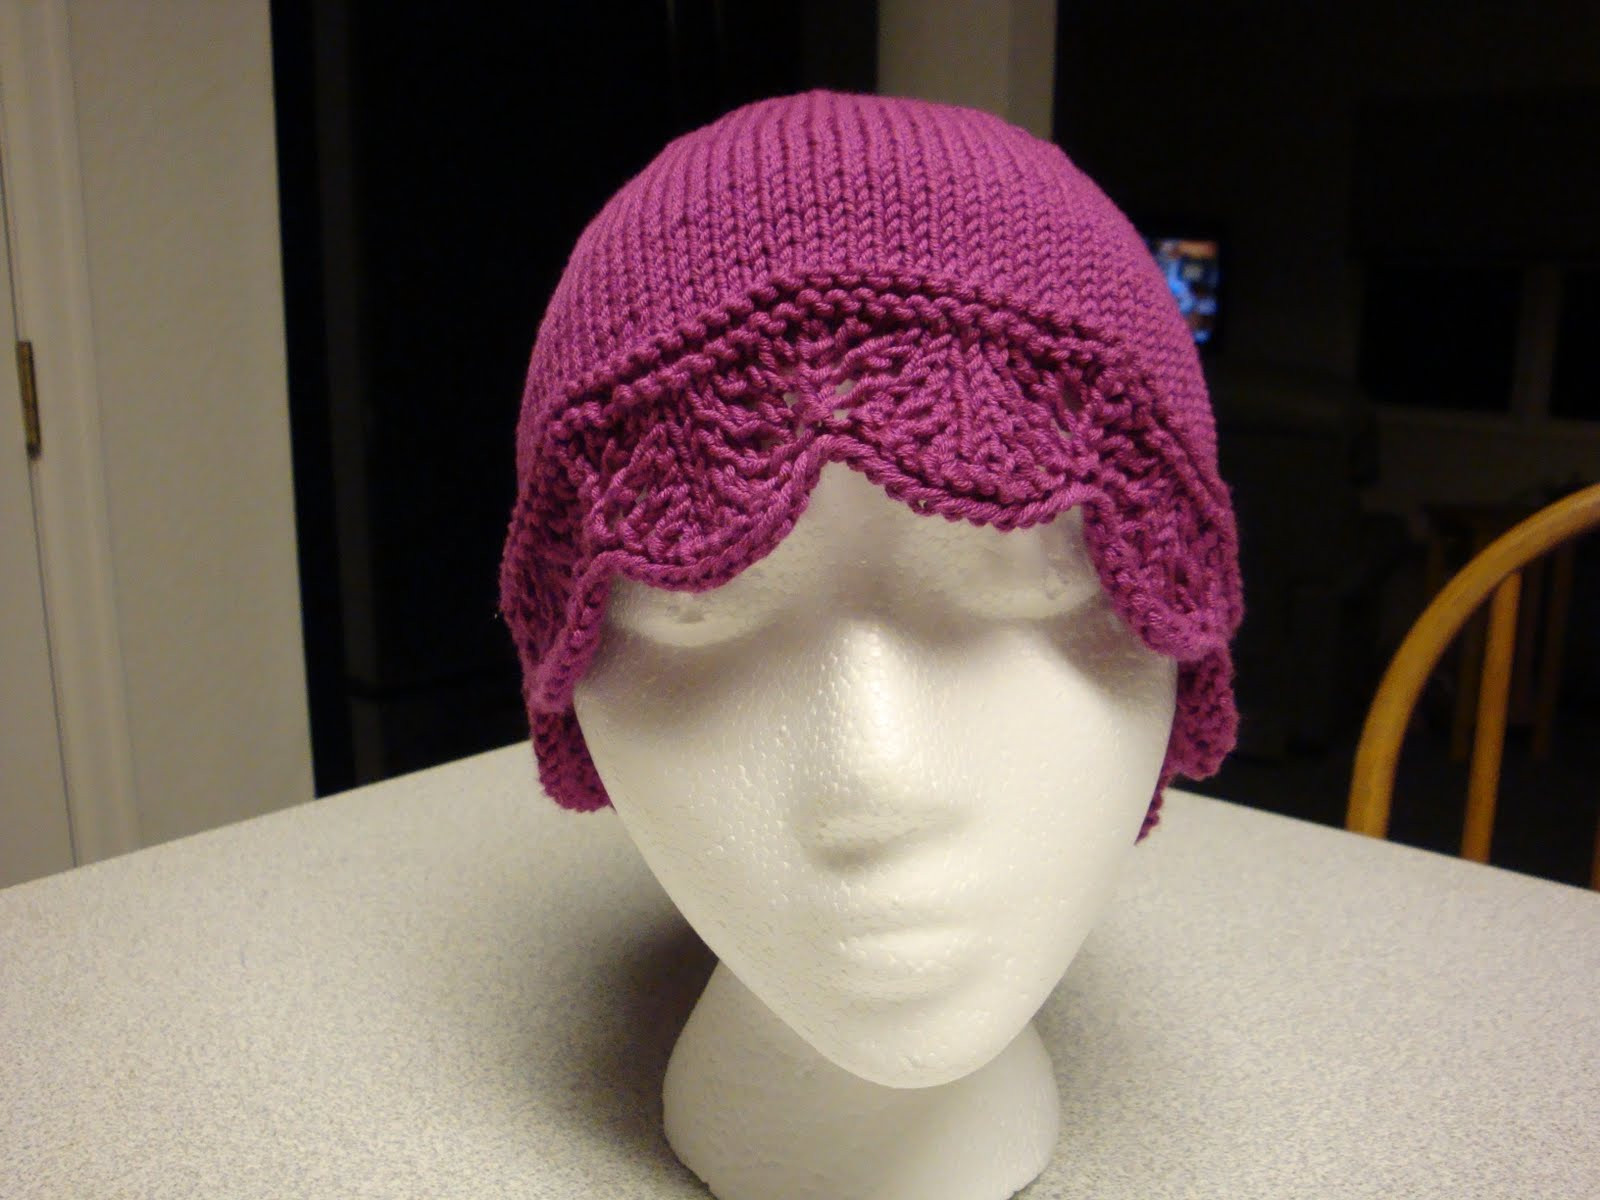 Elegant Chemo Cap Knitting Pattern Design Patterns Free Knitted Chemo Hat Patterns Of Gorgeous 44 Ideas Free Knitted Chemo Hat Patterns